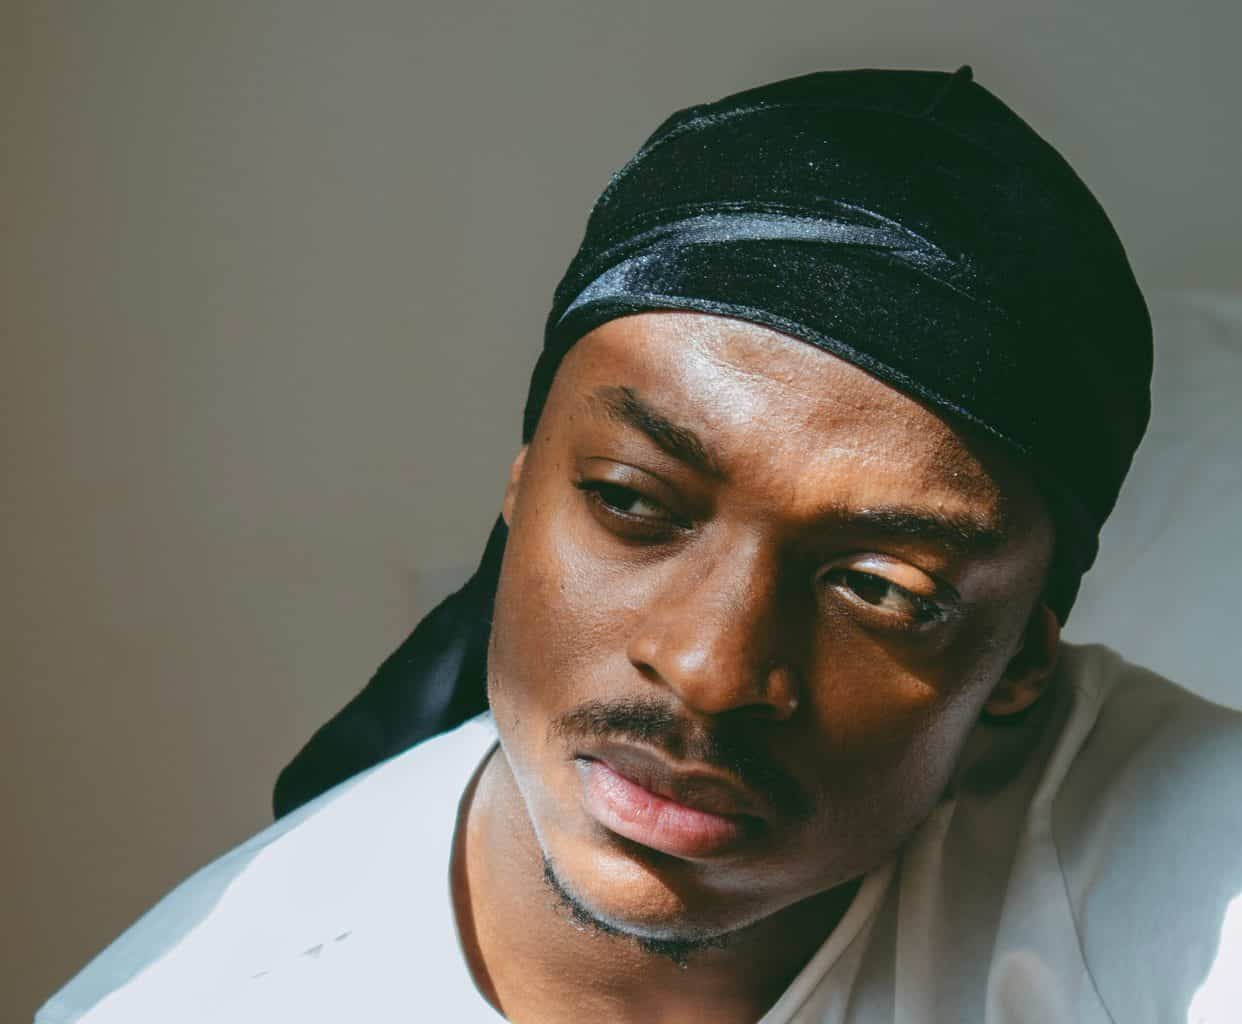 A man wearing a durag with sunlight